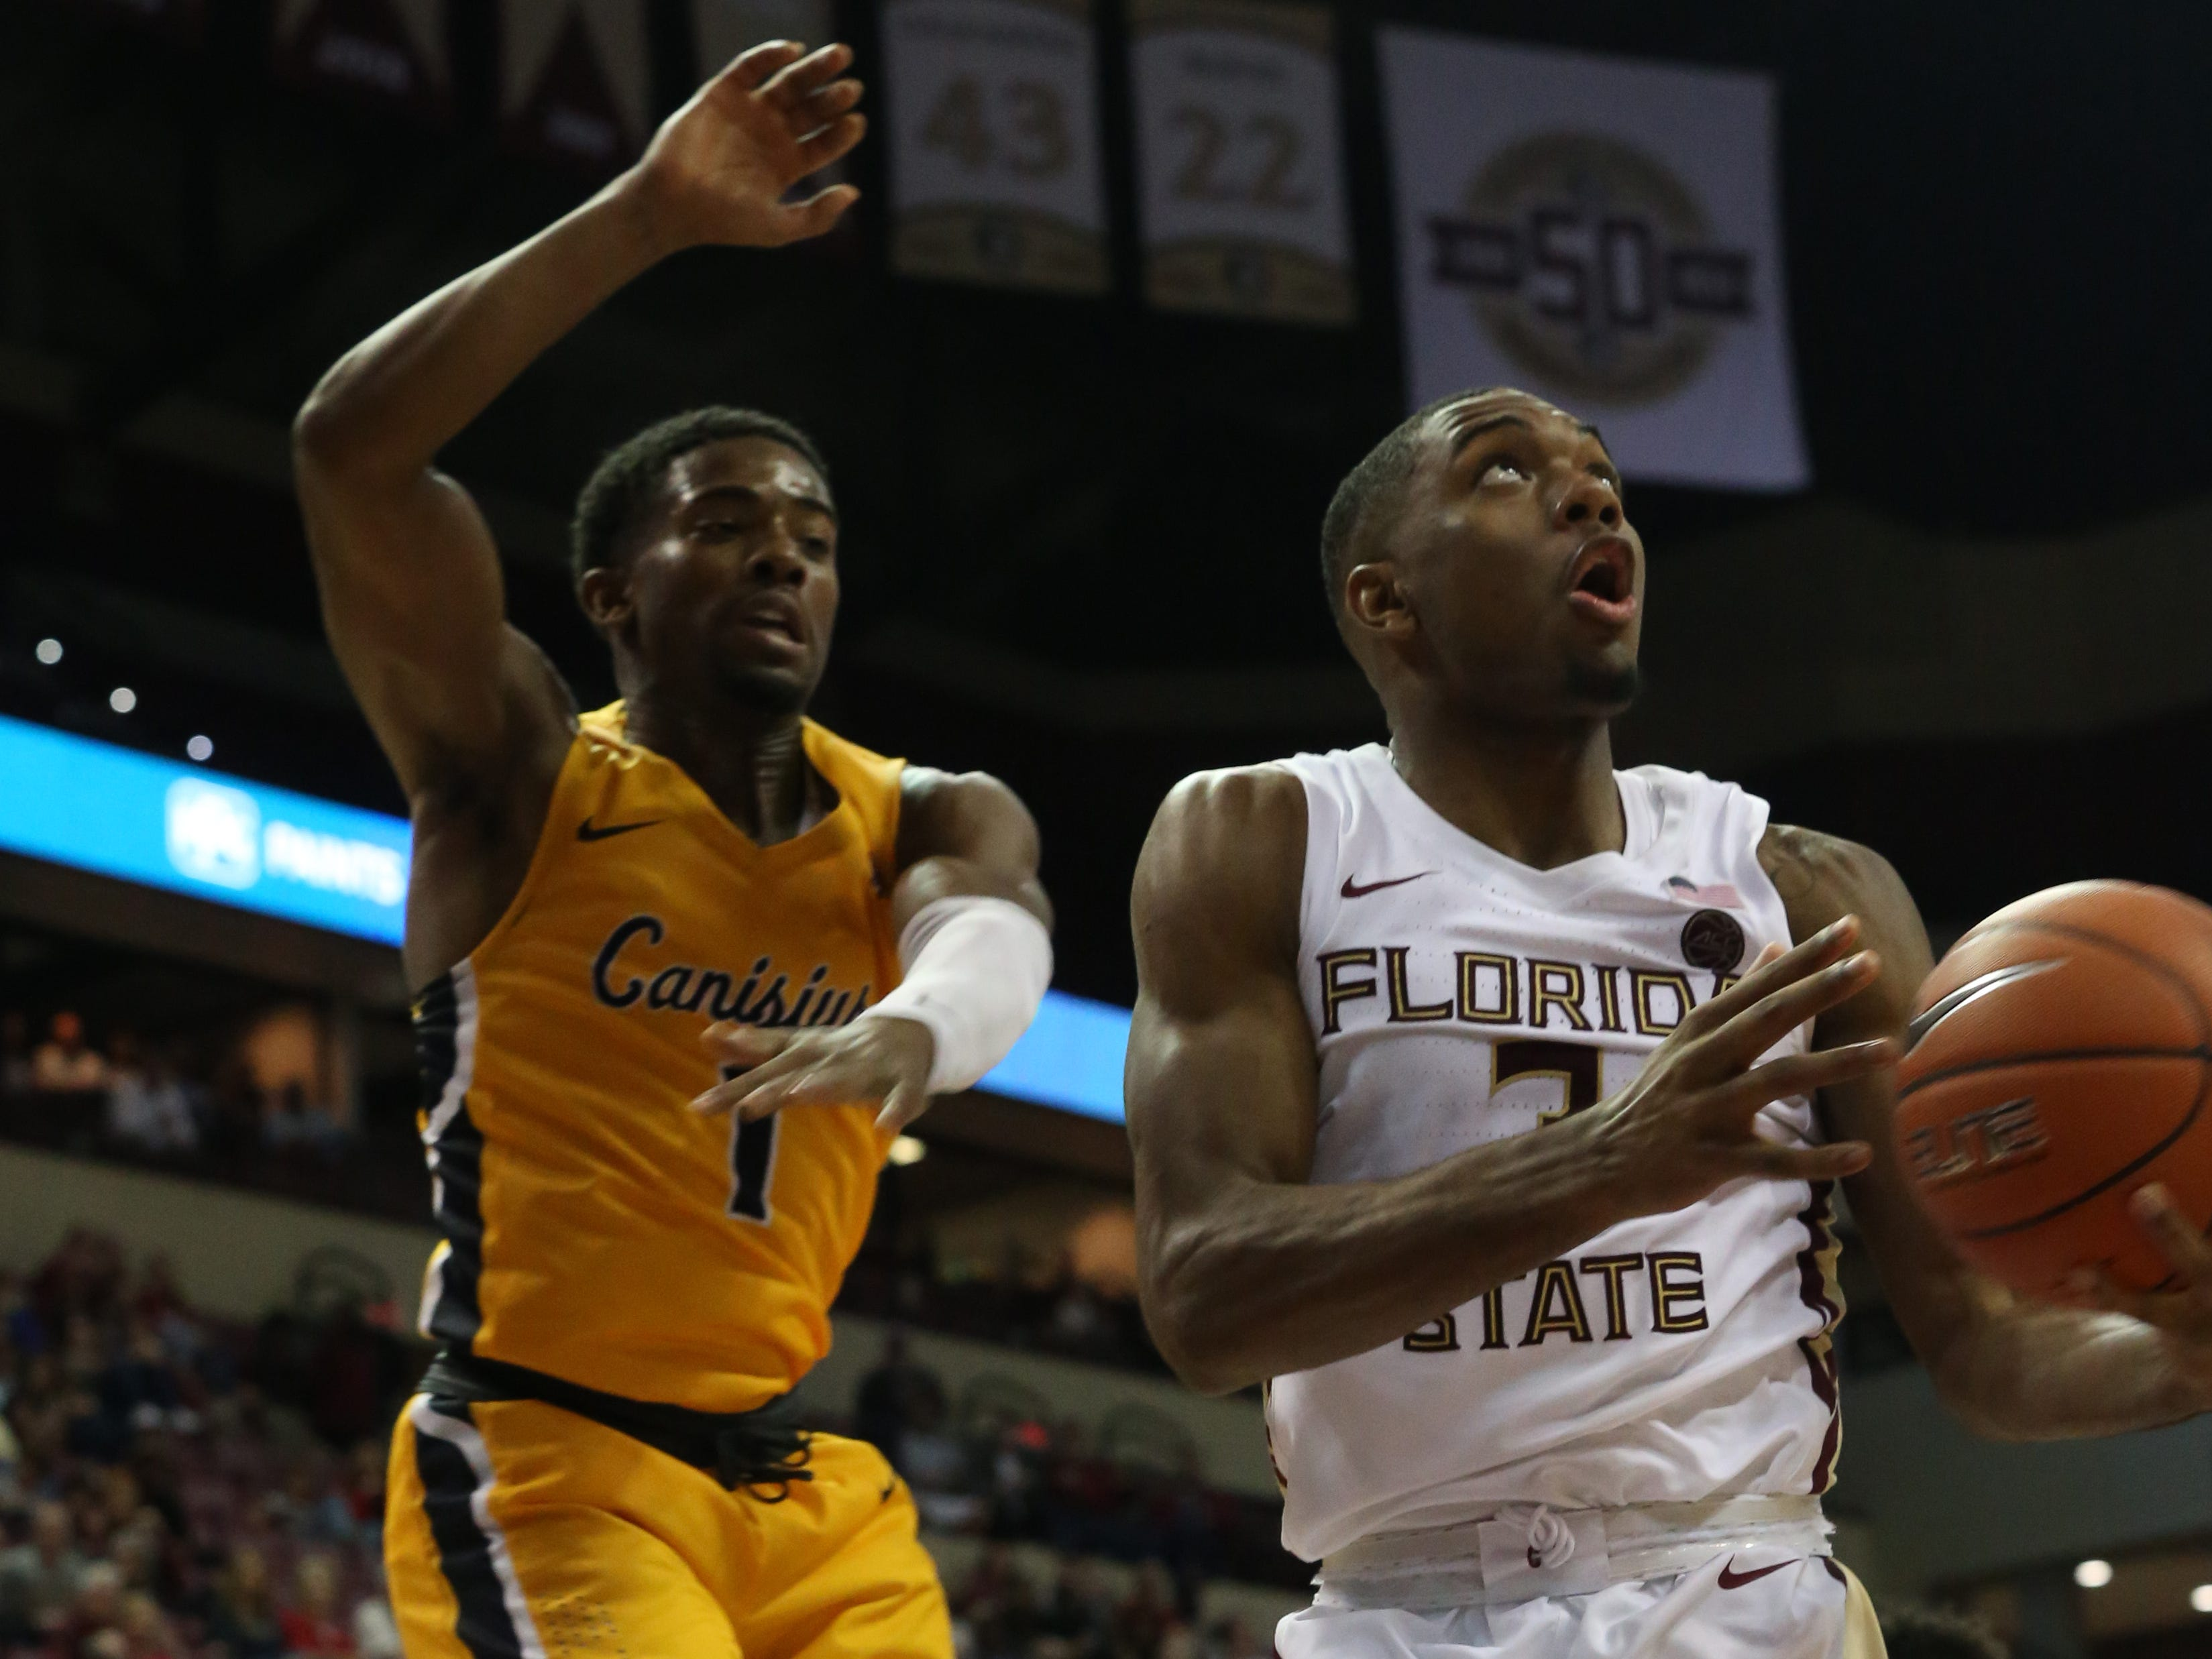 Florida State Seminoles guard Trent Forrest (3) goes for a layup as the Florida State Seminoles host the Canisius Golden Griffins for basketball in the Tucker Civic Center, Monday, Nov. 19, 2018.